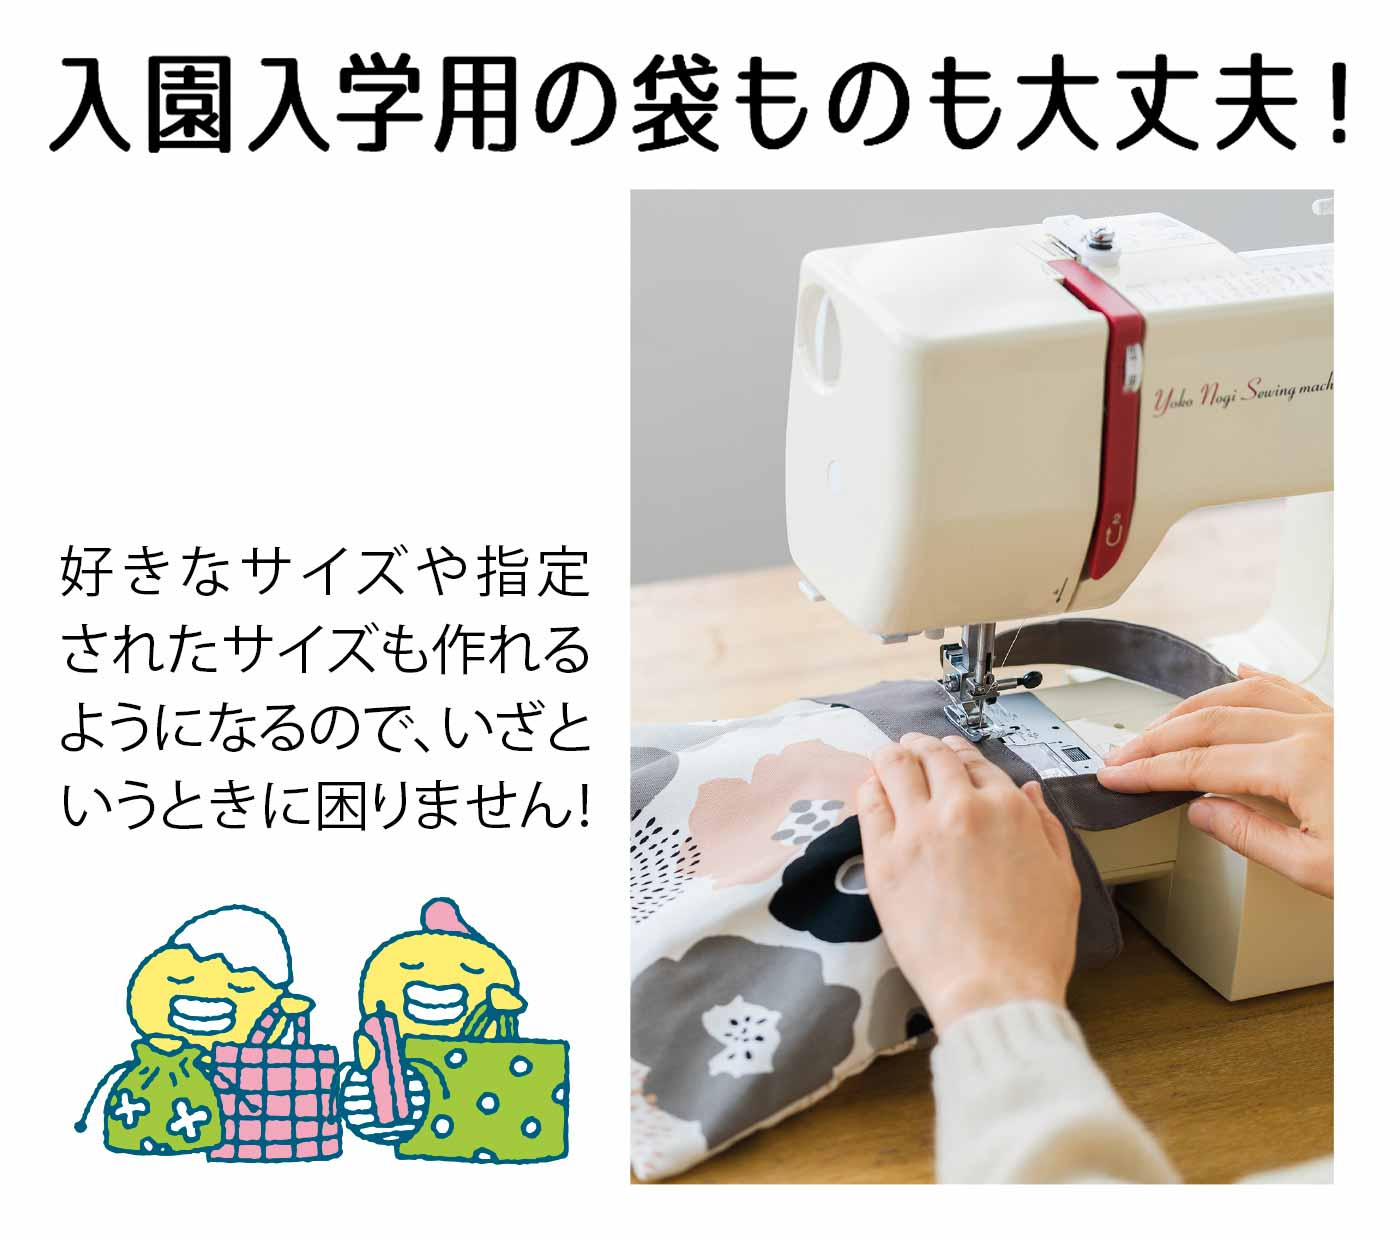 Couturier[クチュリエ]|袋ものはおまかせ! バッグとポーチはおてのものレッスンの会